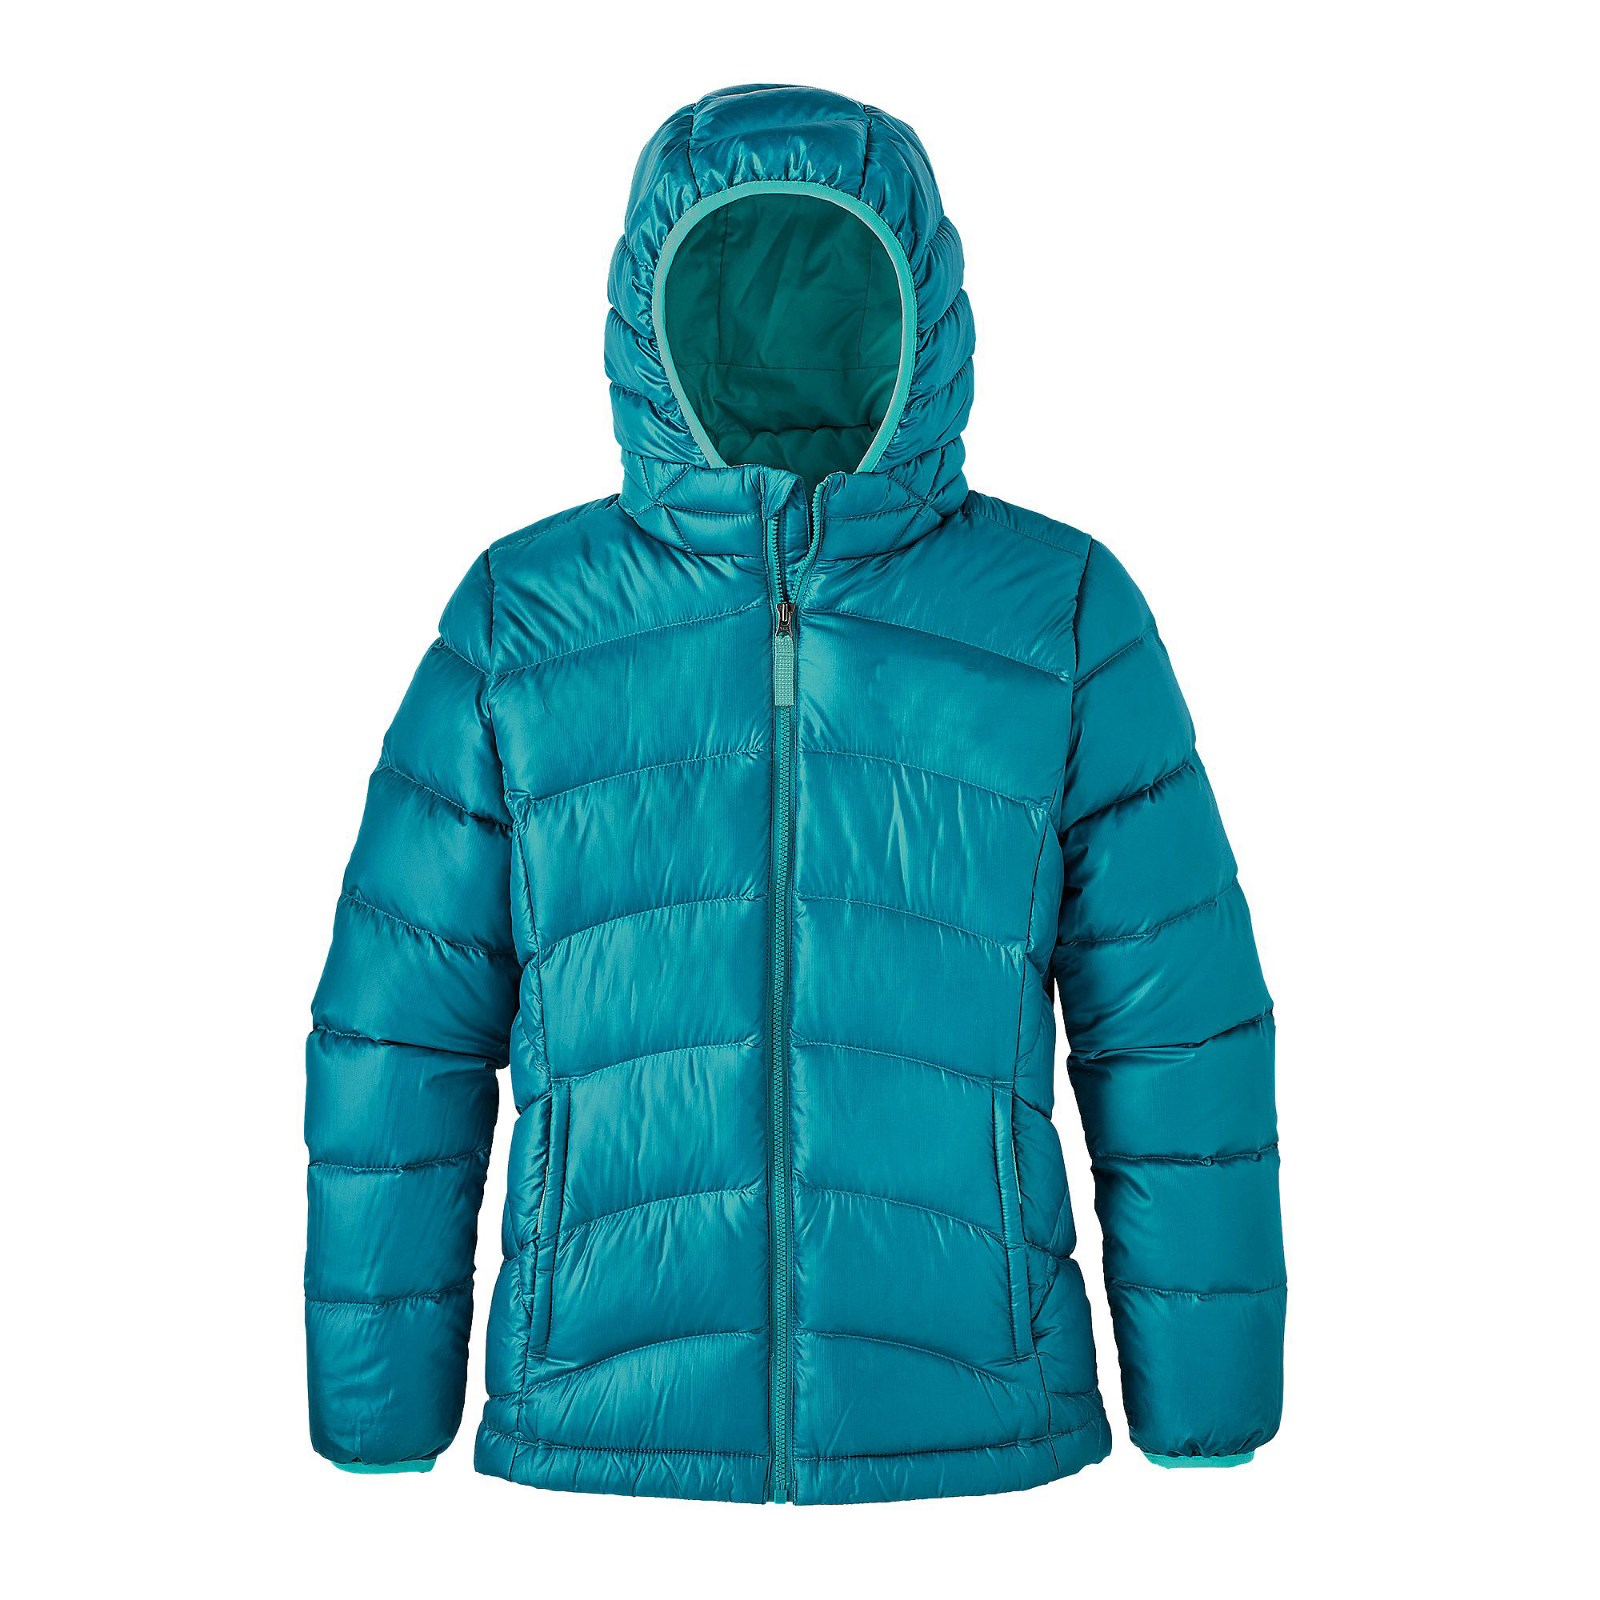 Girls' Hi-loft Down Jacket Hoody